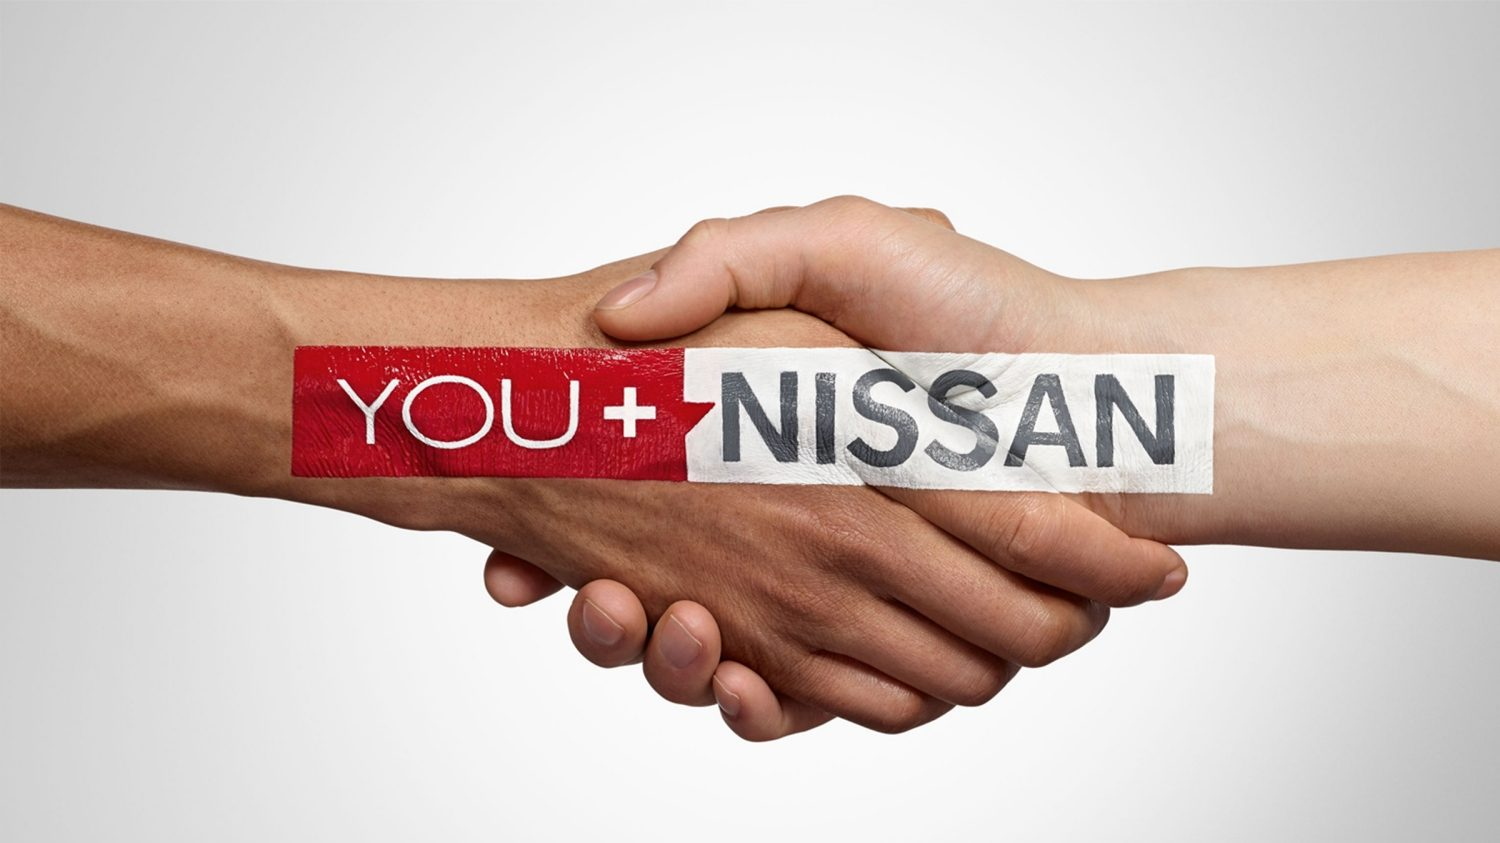 YOU+NISSAN Bild